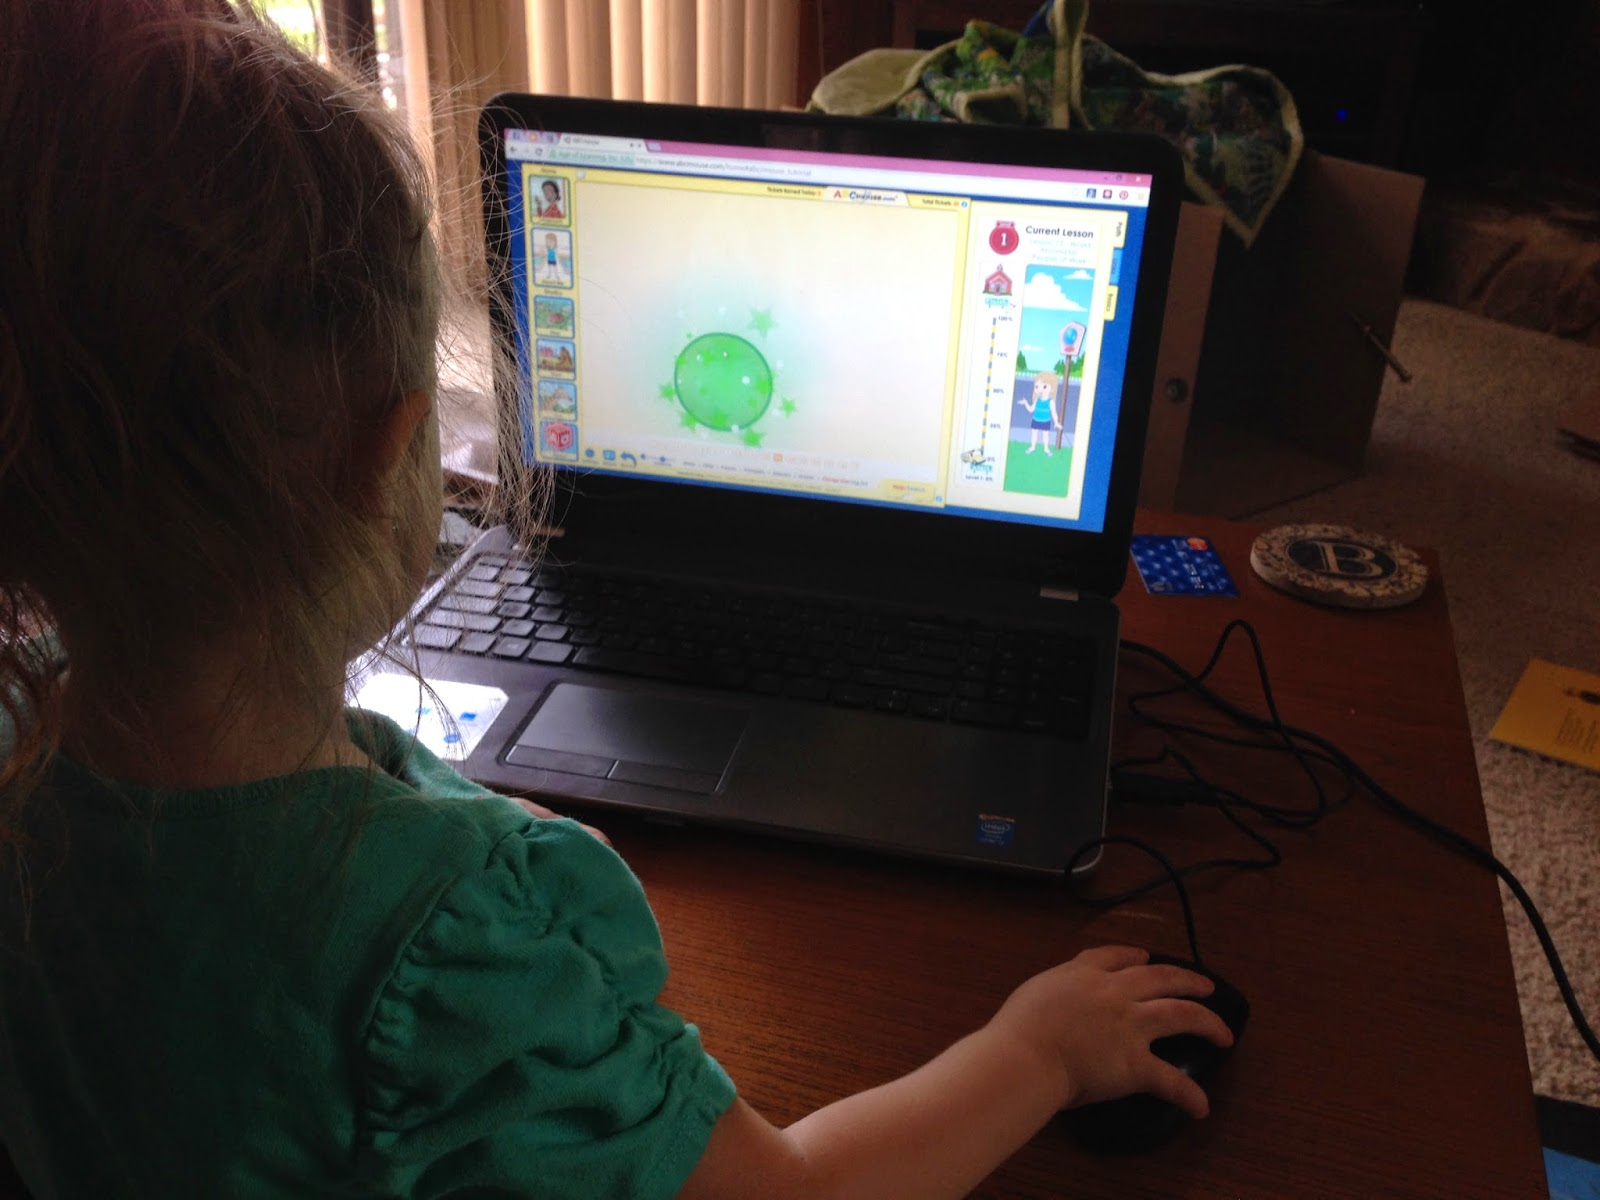 toddler learns to use mouse on abcmouse.com